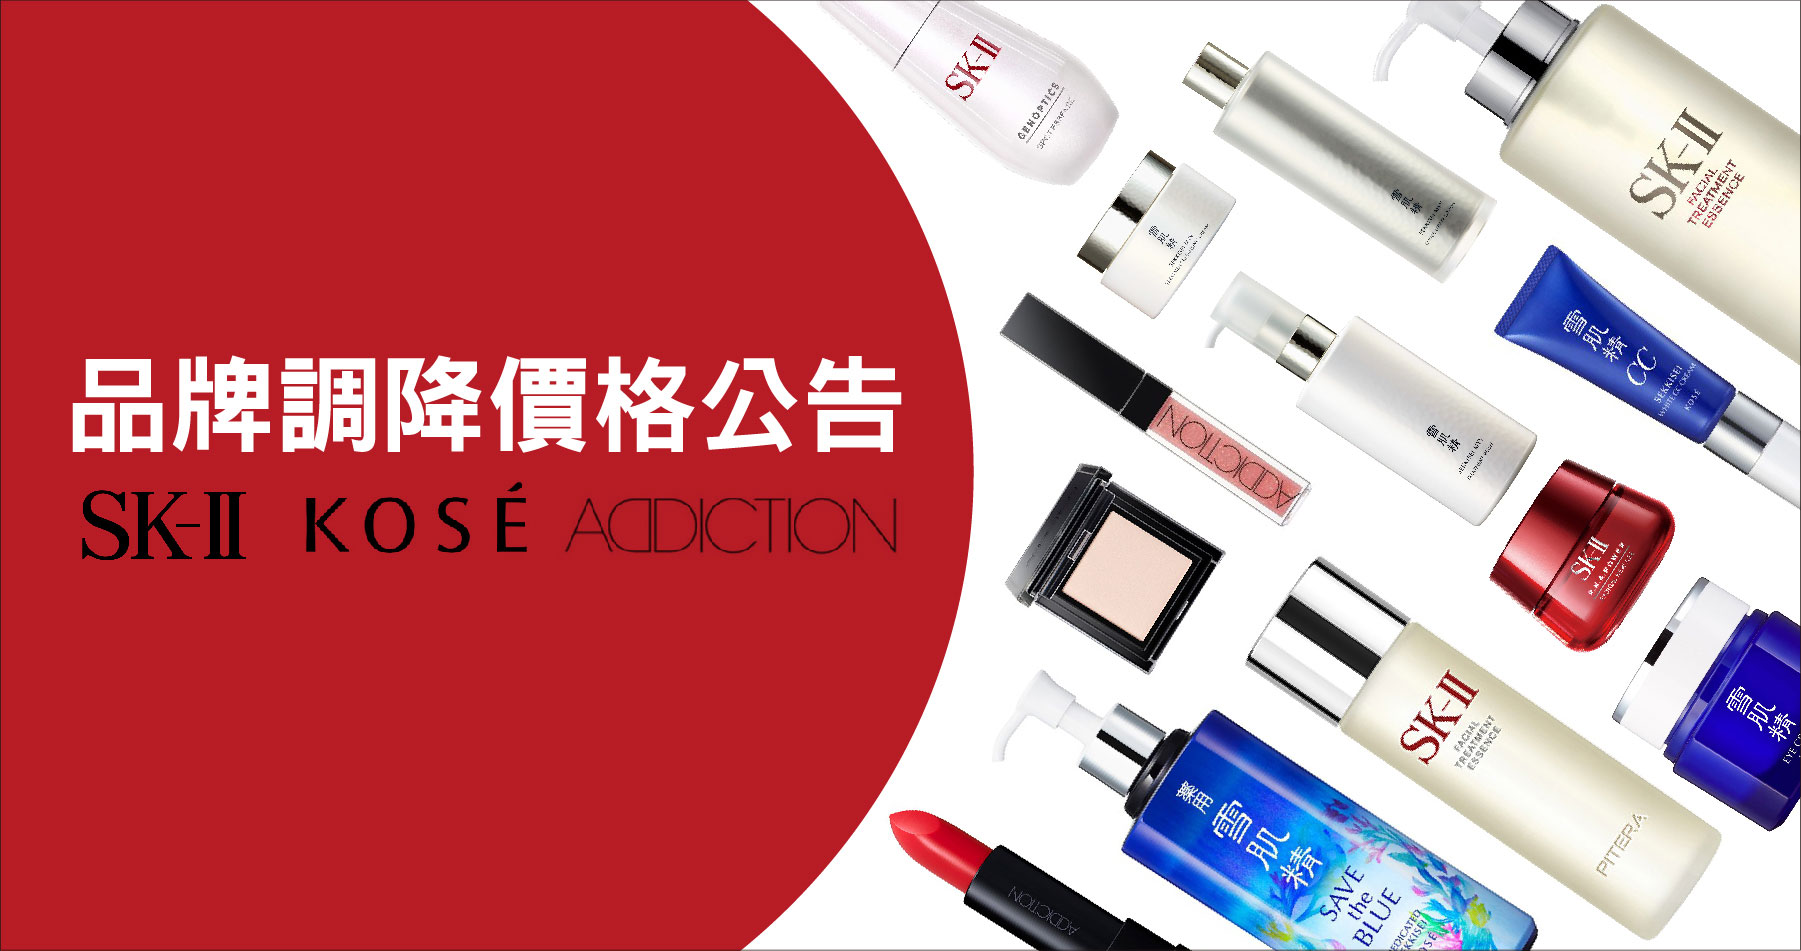 2019年SK-II。KOSE。ADDICTION降價公告